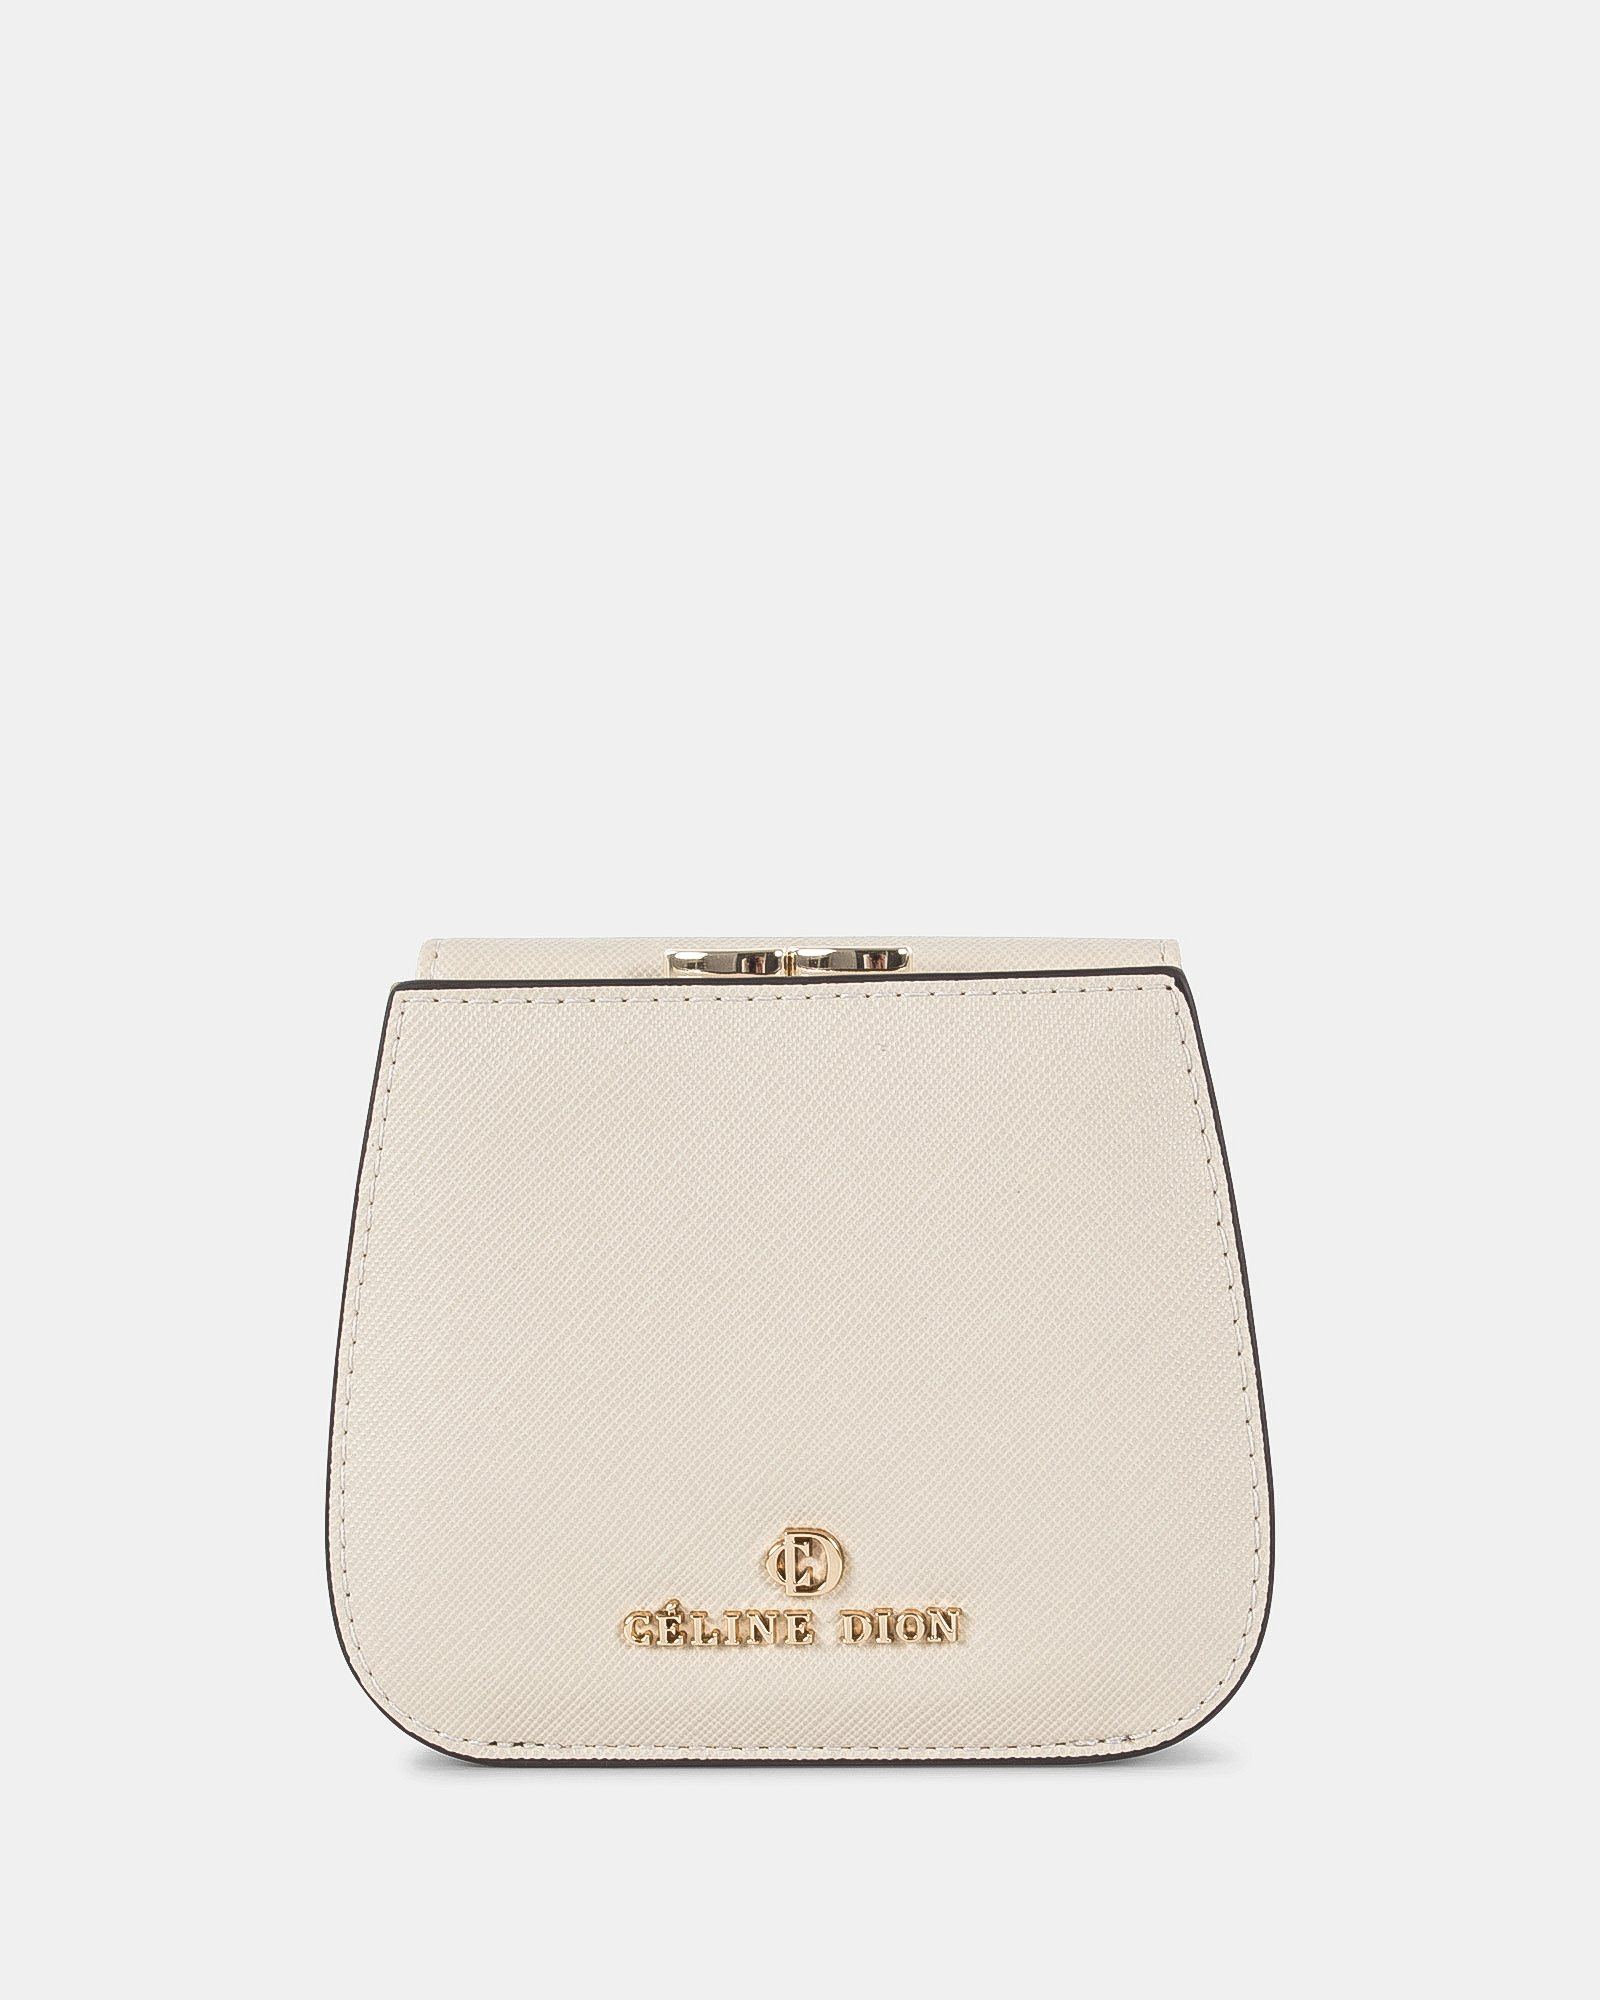 GRAZIOSO - Small rounded wallet with integrated coin clasp - sand - Céline Dion - Zoom